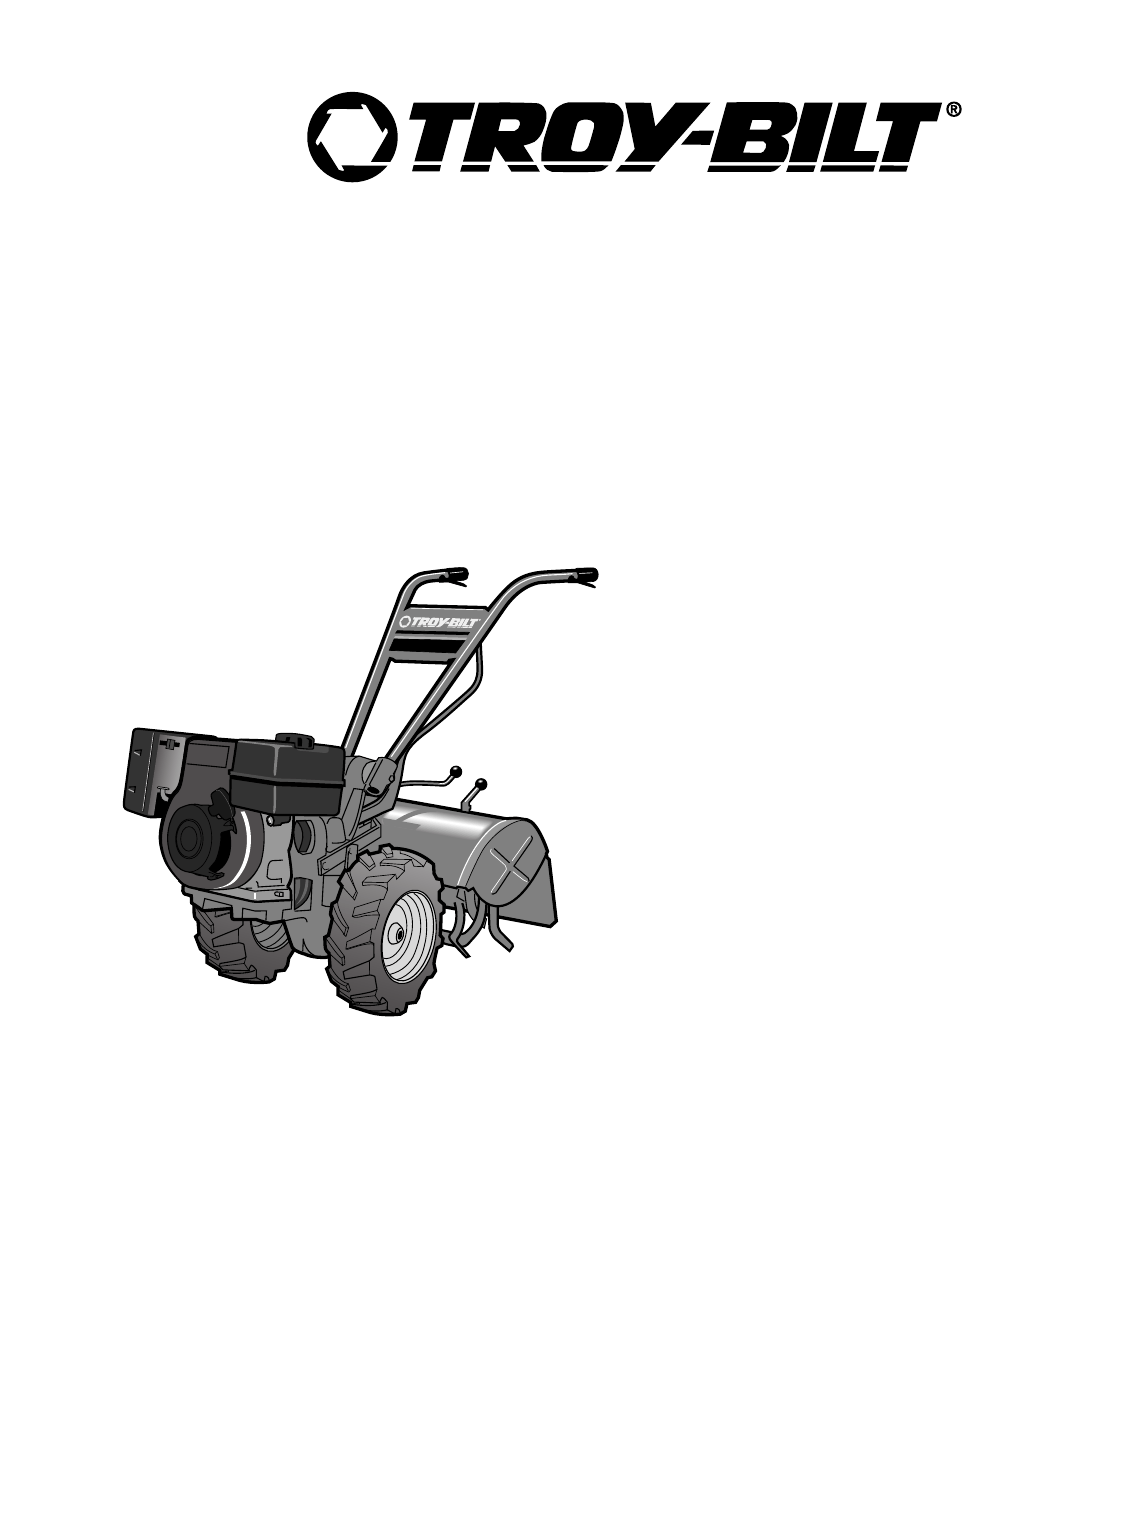 Troy-Bilt Tiller 682J, E686N, E682L User Guide